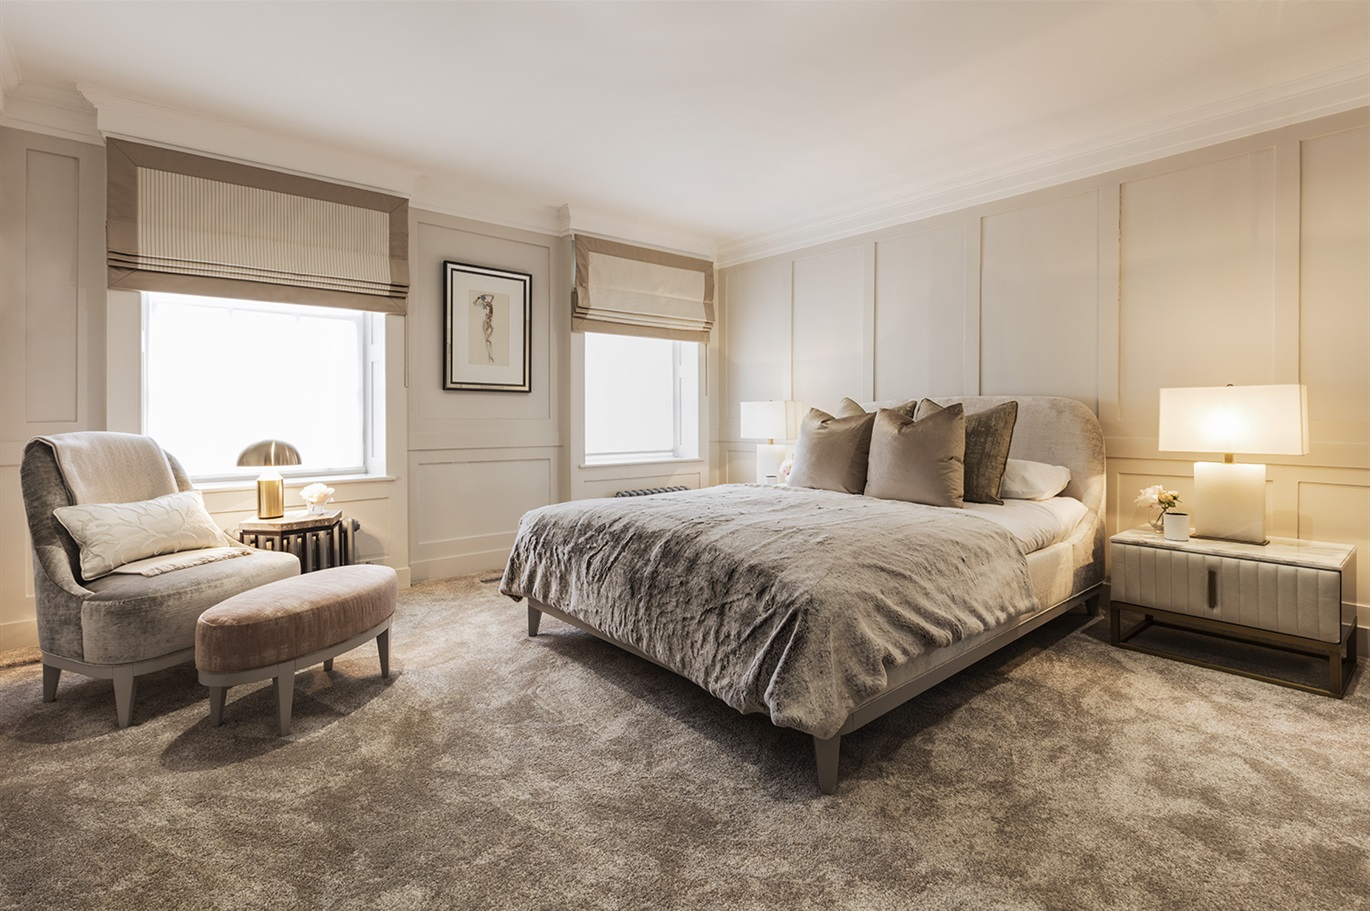 Hogarth House - Guest Bedroom